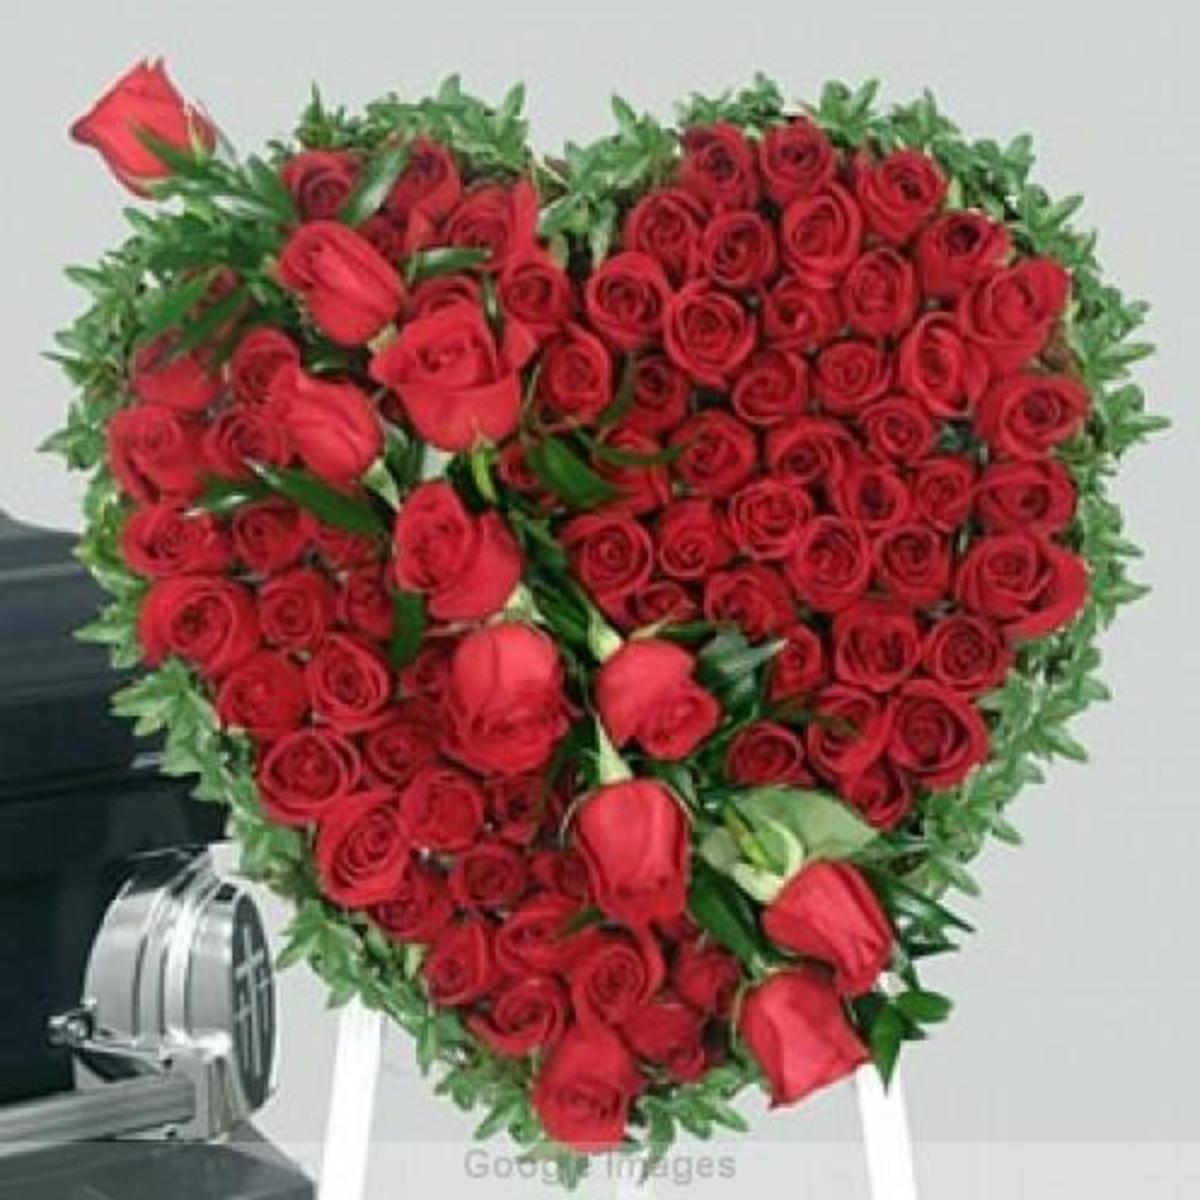 Sending Roses to Your Love